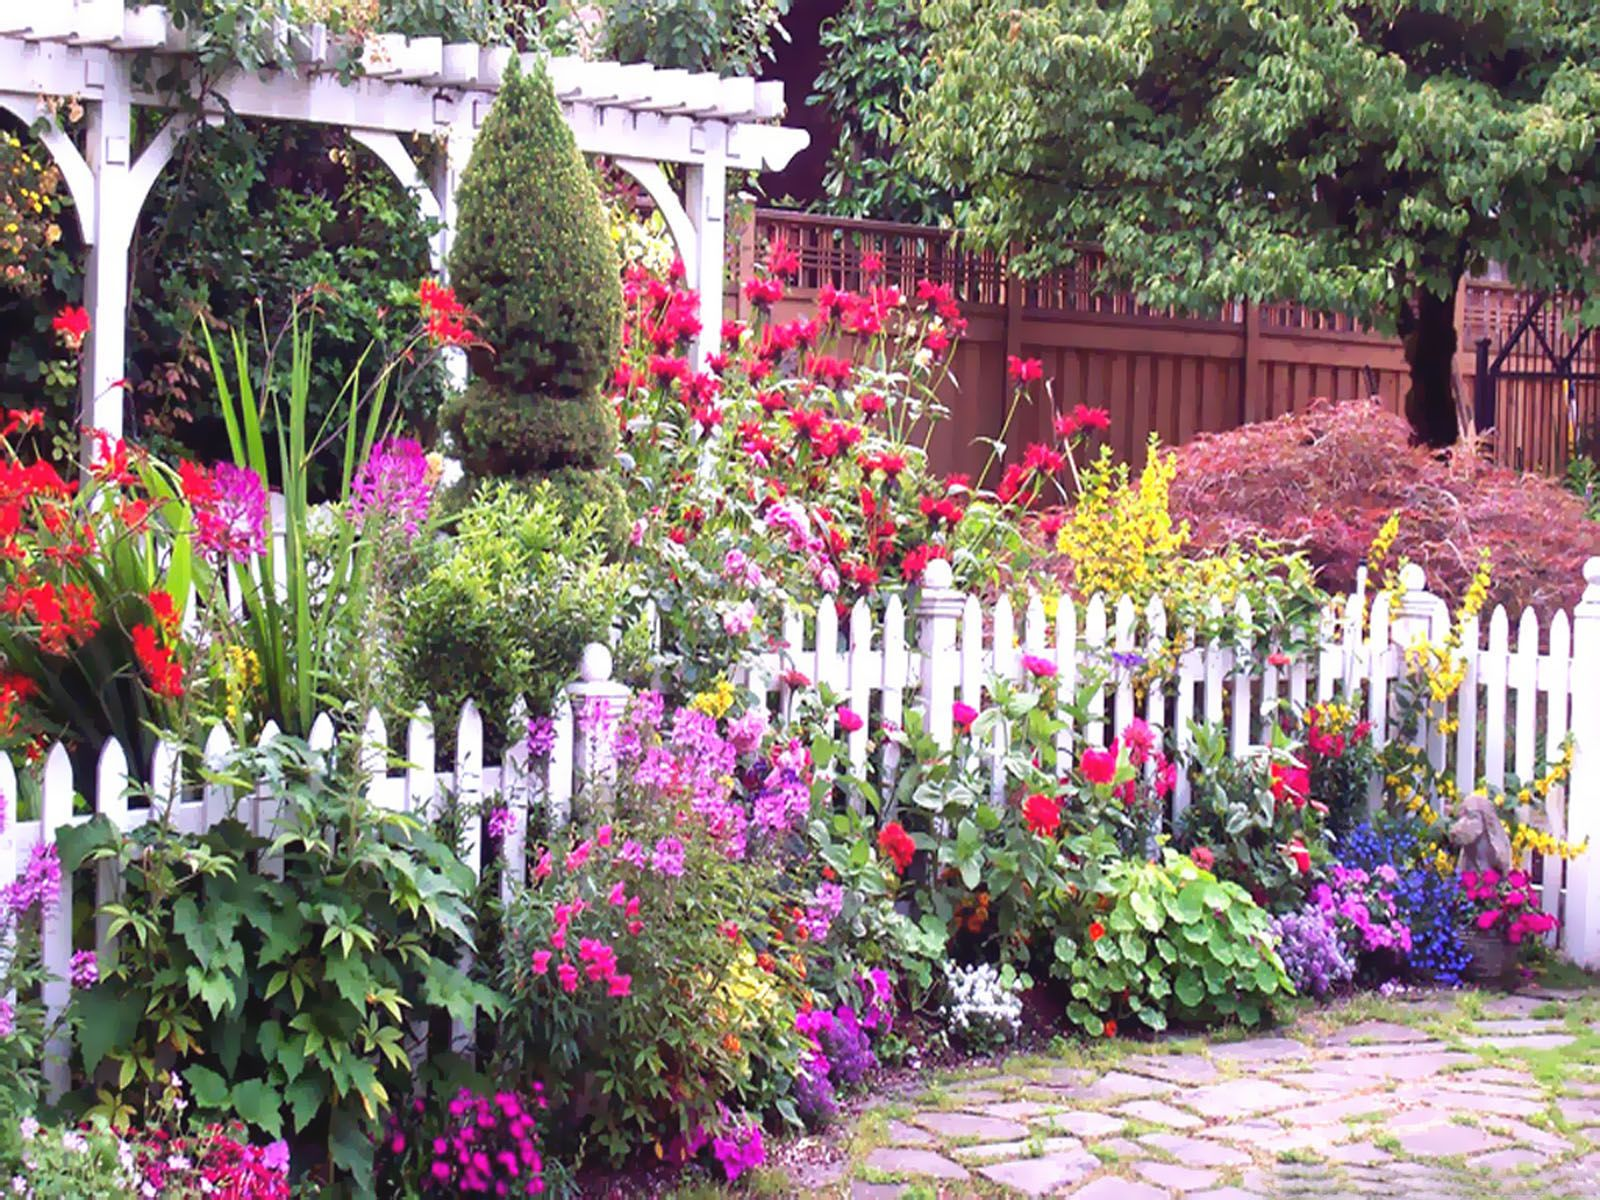 English cottage garden ideas - English Cottage Garden Pictures Photos And Images For Facebook Tumblr Pinterest